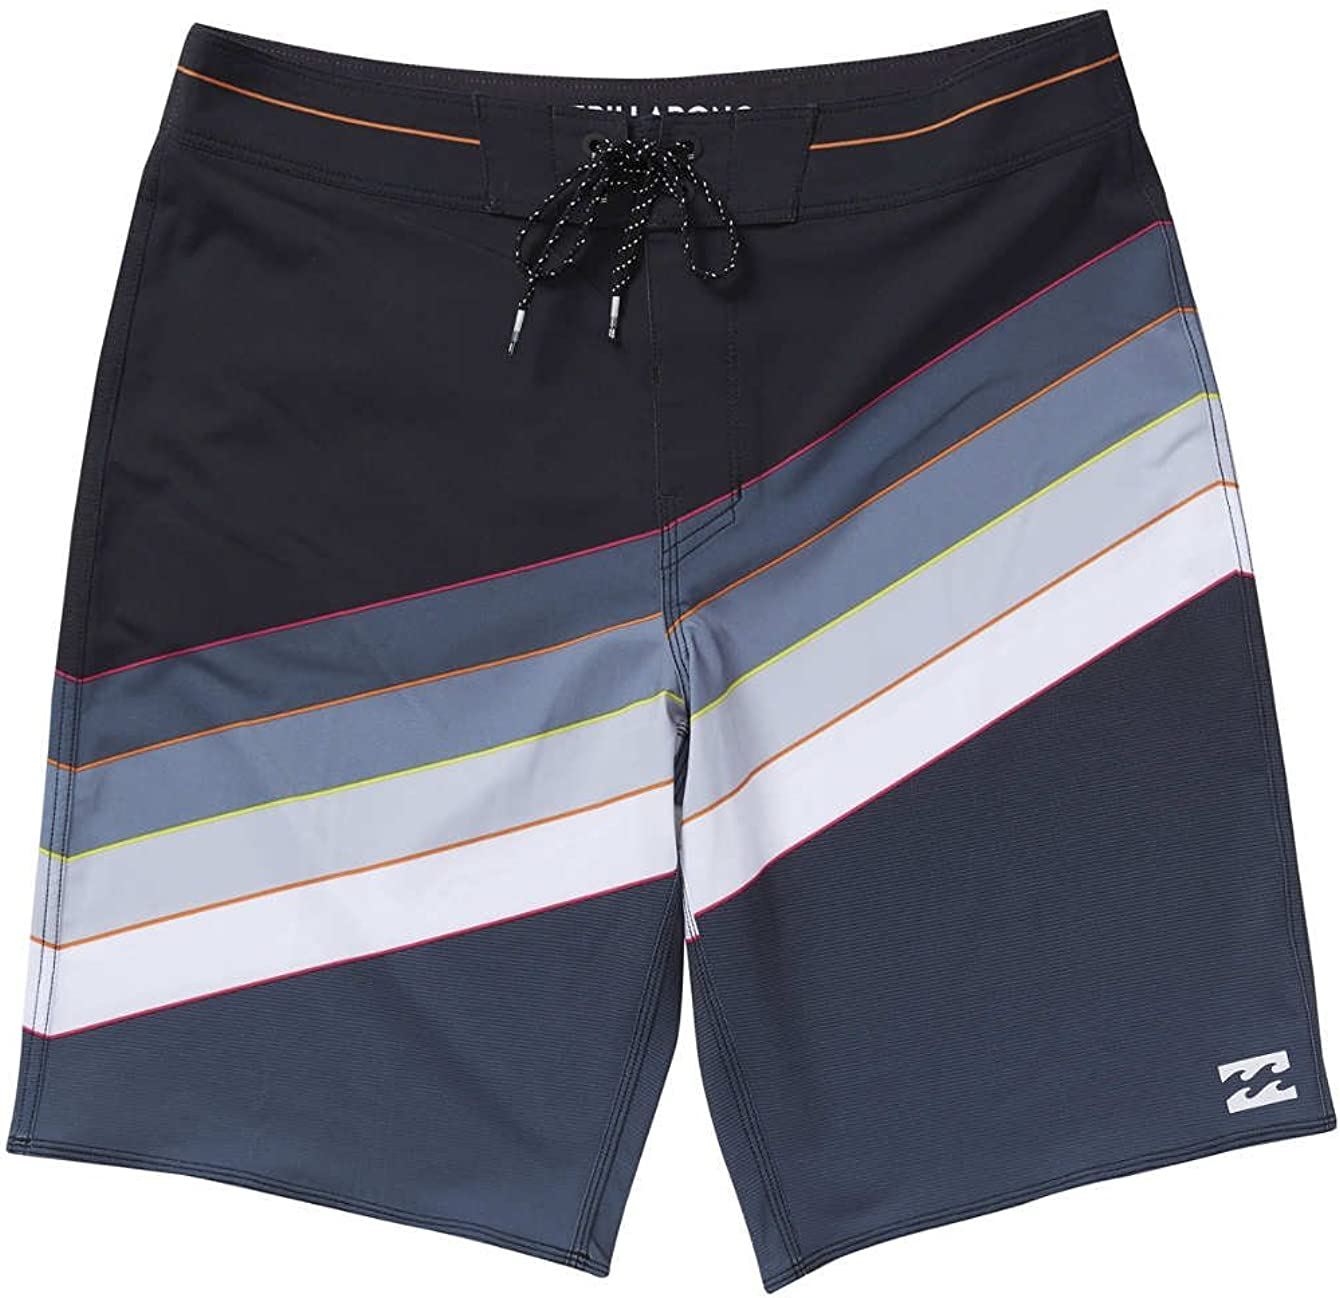 TALLA Small. G.S.M. Europe - Billabong North Point X 20 - Bañador para Hombre. Hombre